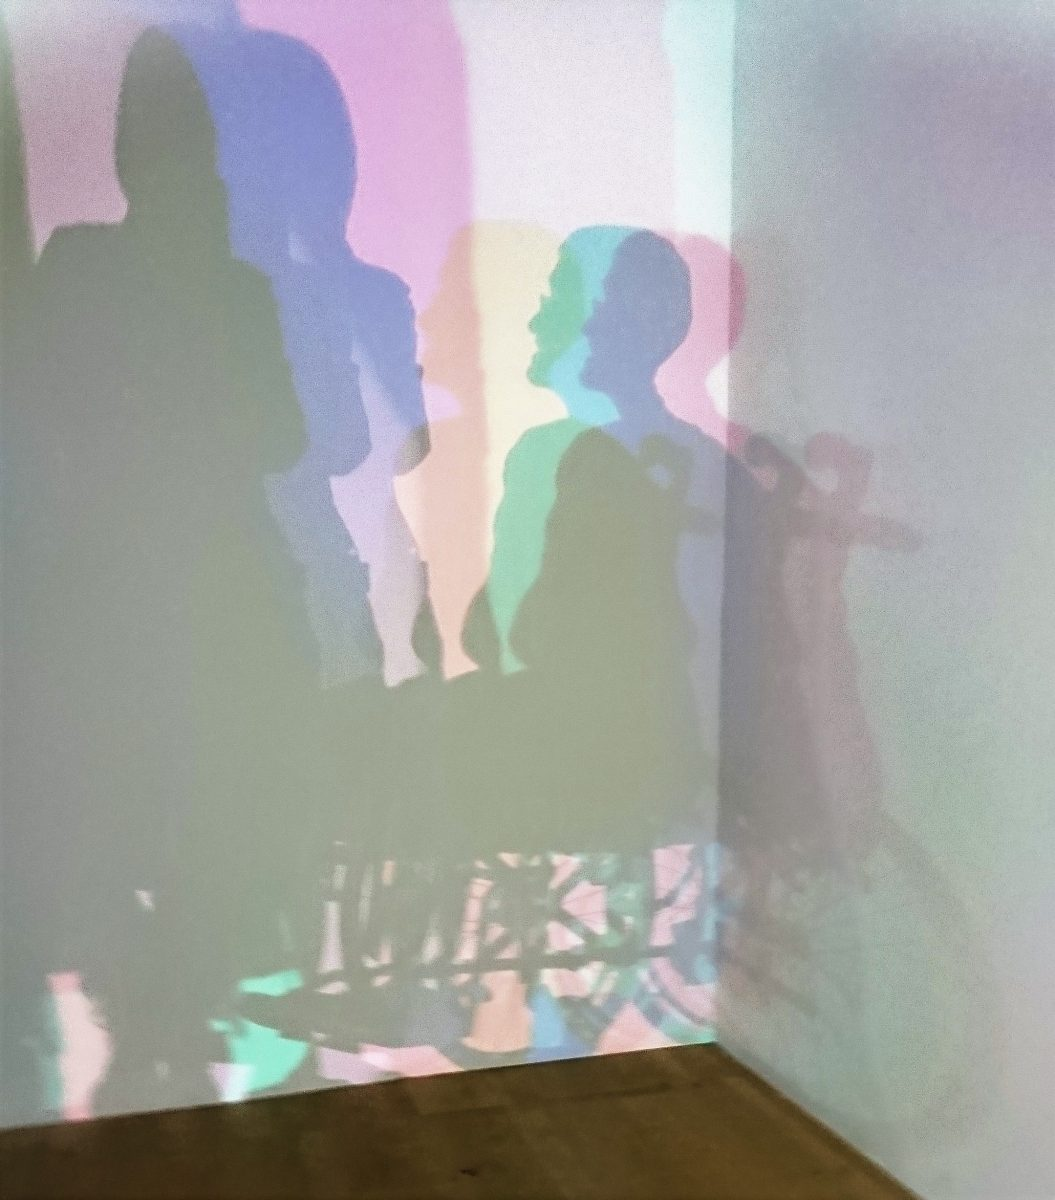 """Picture- Me in my wheelchair in the shadows (in a good way) at the Olafur Eliasson """"In Real Life"""" exhibition at the Tate"""